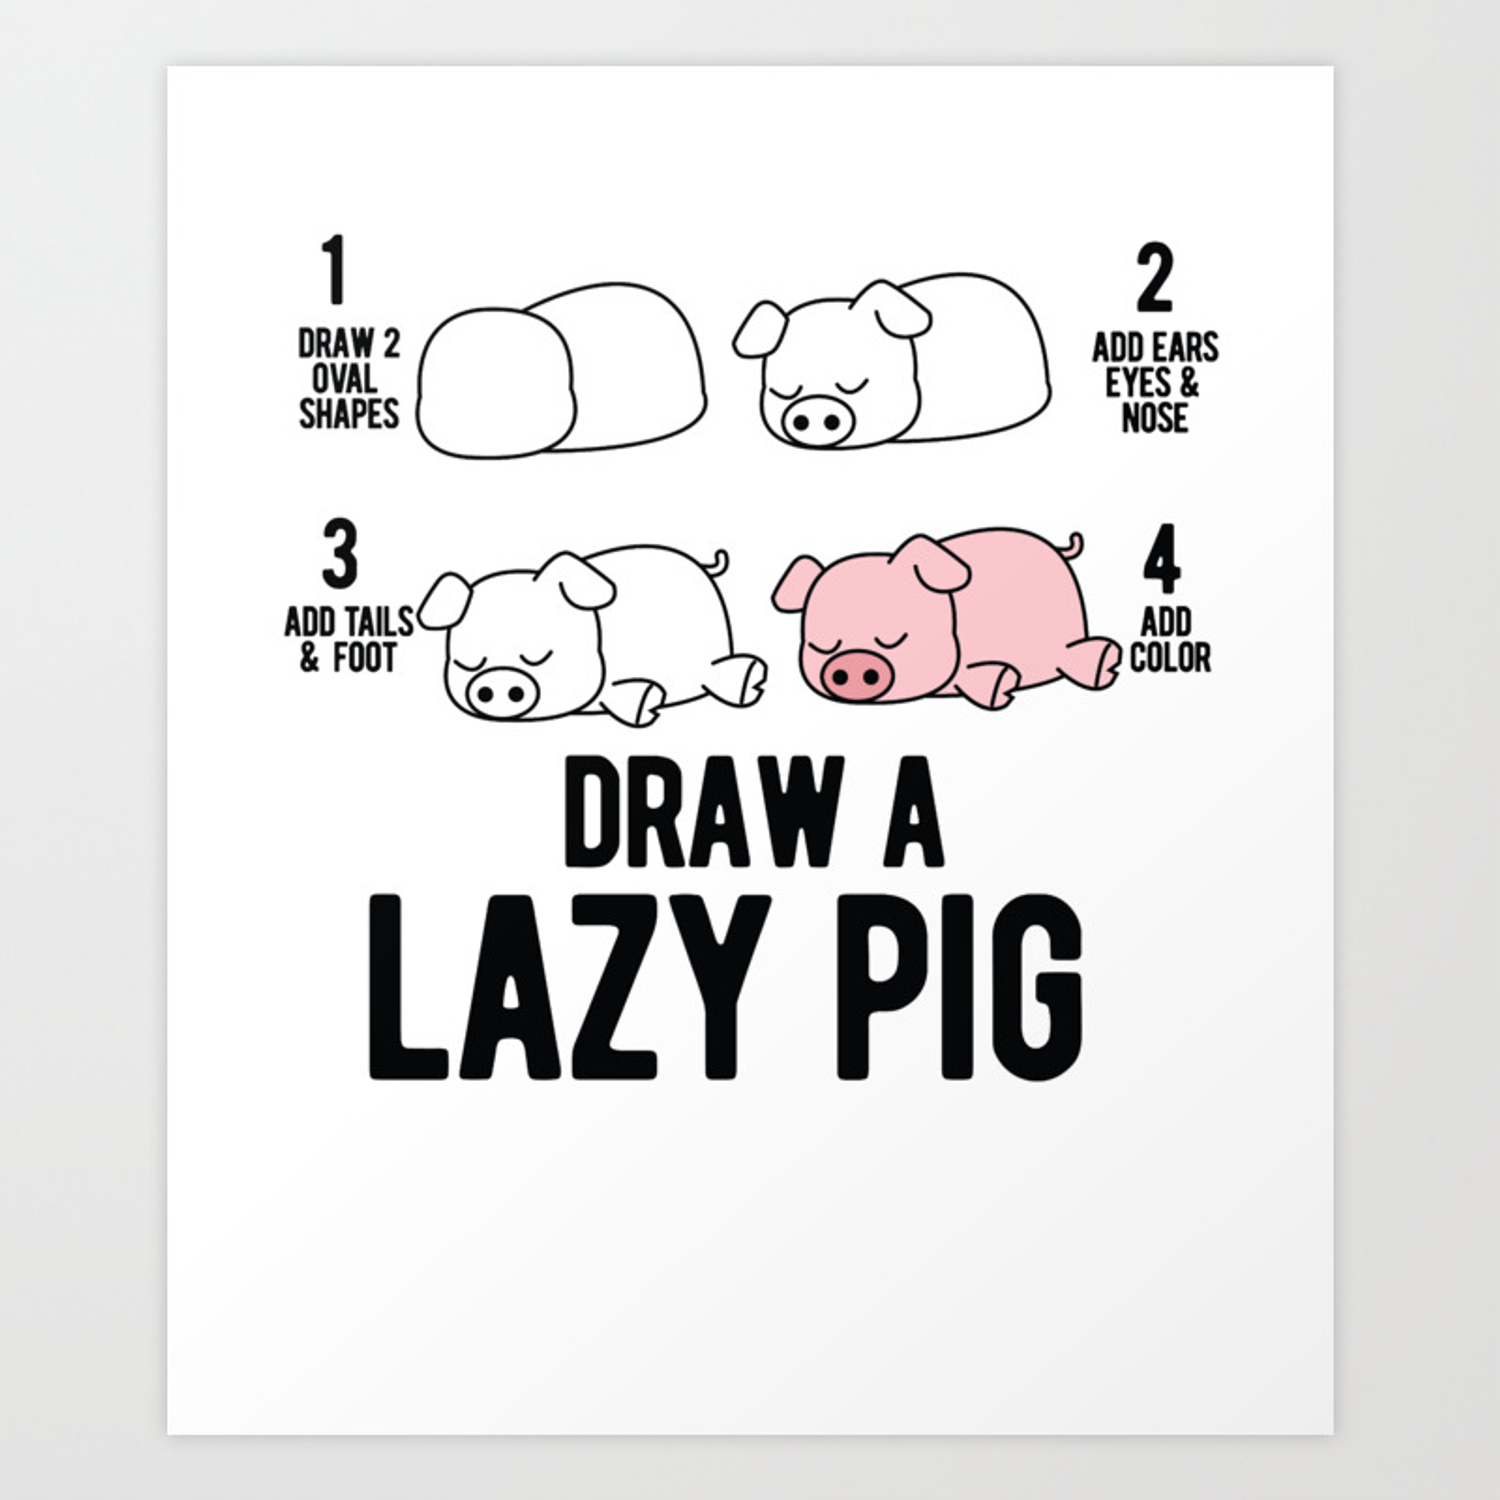 Draw A Lazy Pig Fun Animal Step By Step Painting Art Print By Valuestees Society6